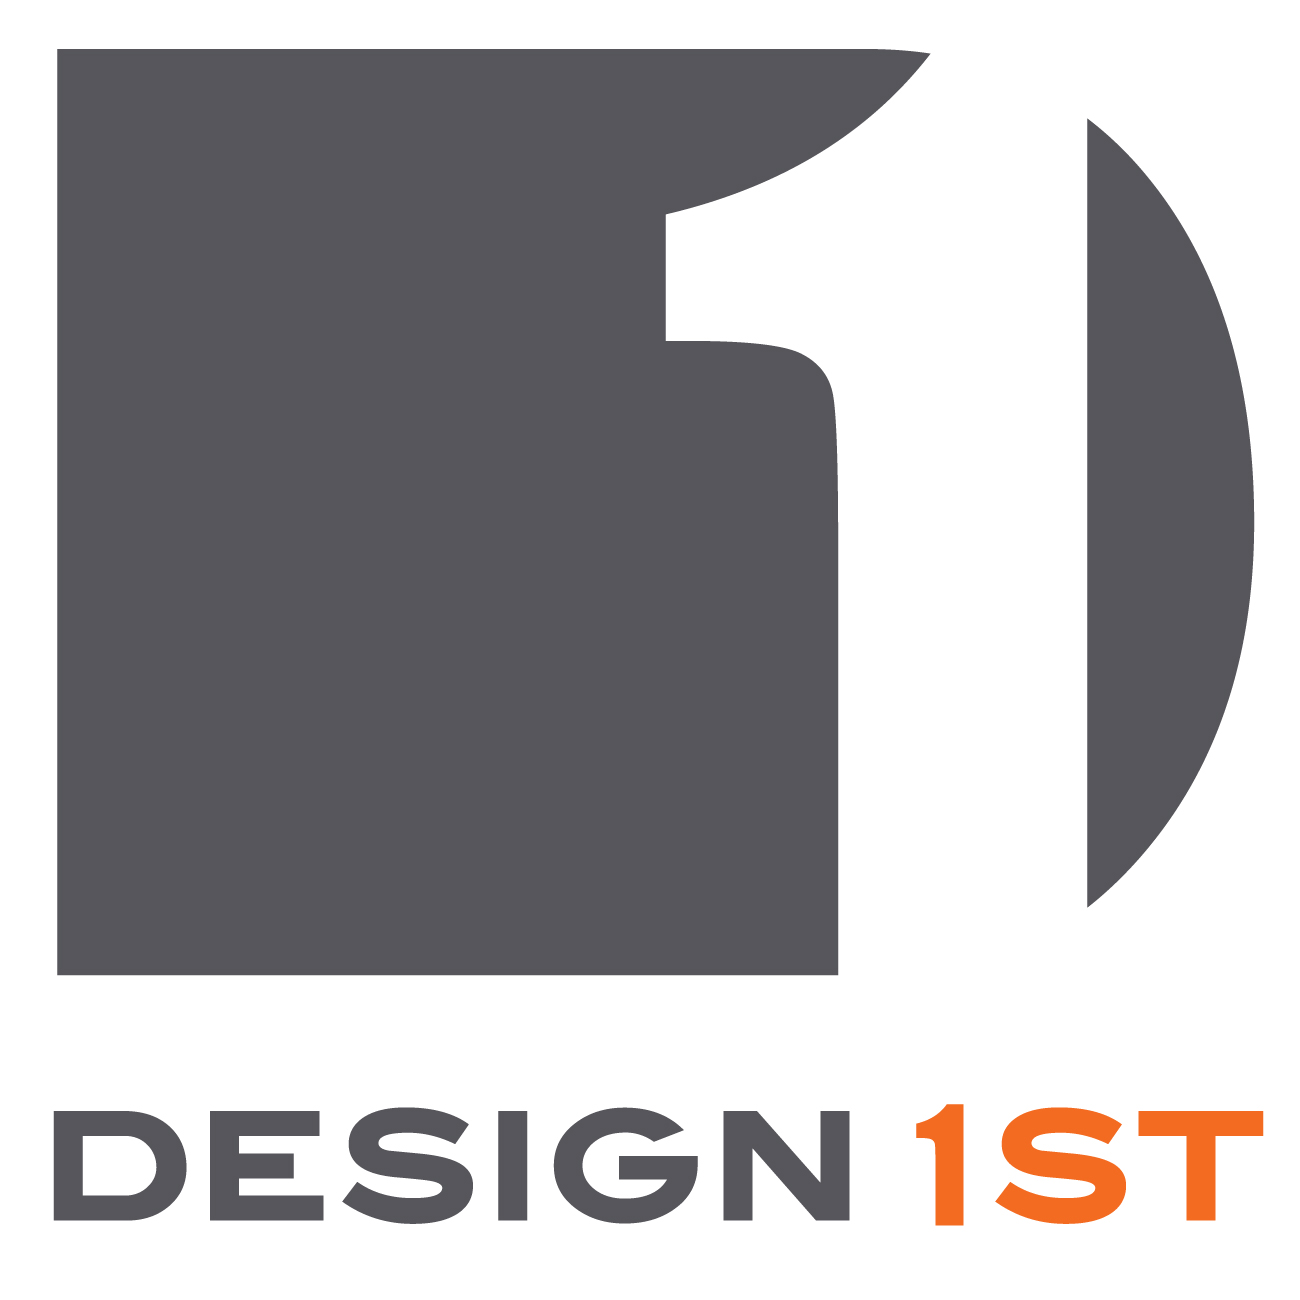 Design 1st Demonstrates Significant Momentum as Customers Seek New Hardware Product Development Expertise